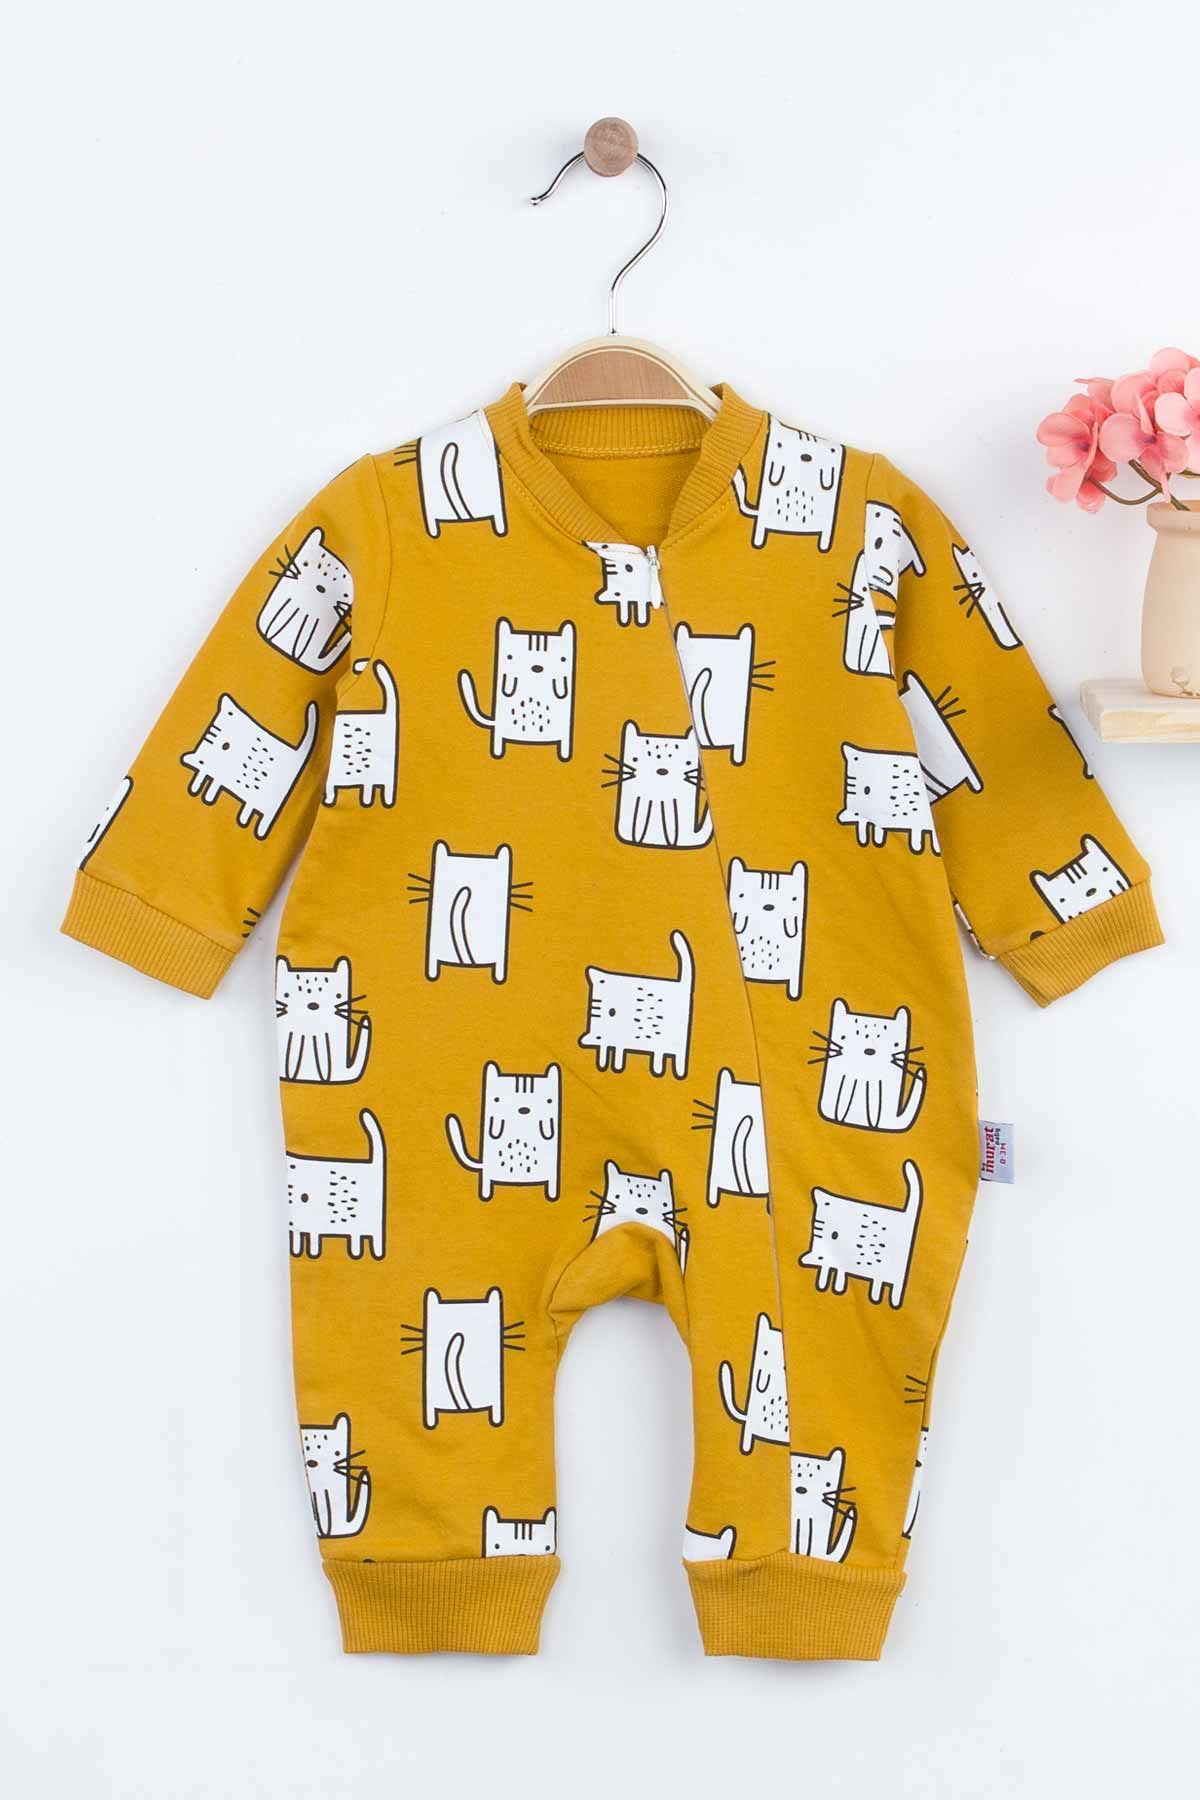 Yellow Cat Baby Girl Rompers Babies Clothes Set Outfit Cotton Comfortable Underwear 2021 New Season Girls Cats Salopet Models